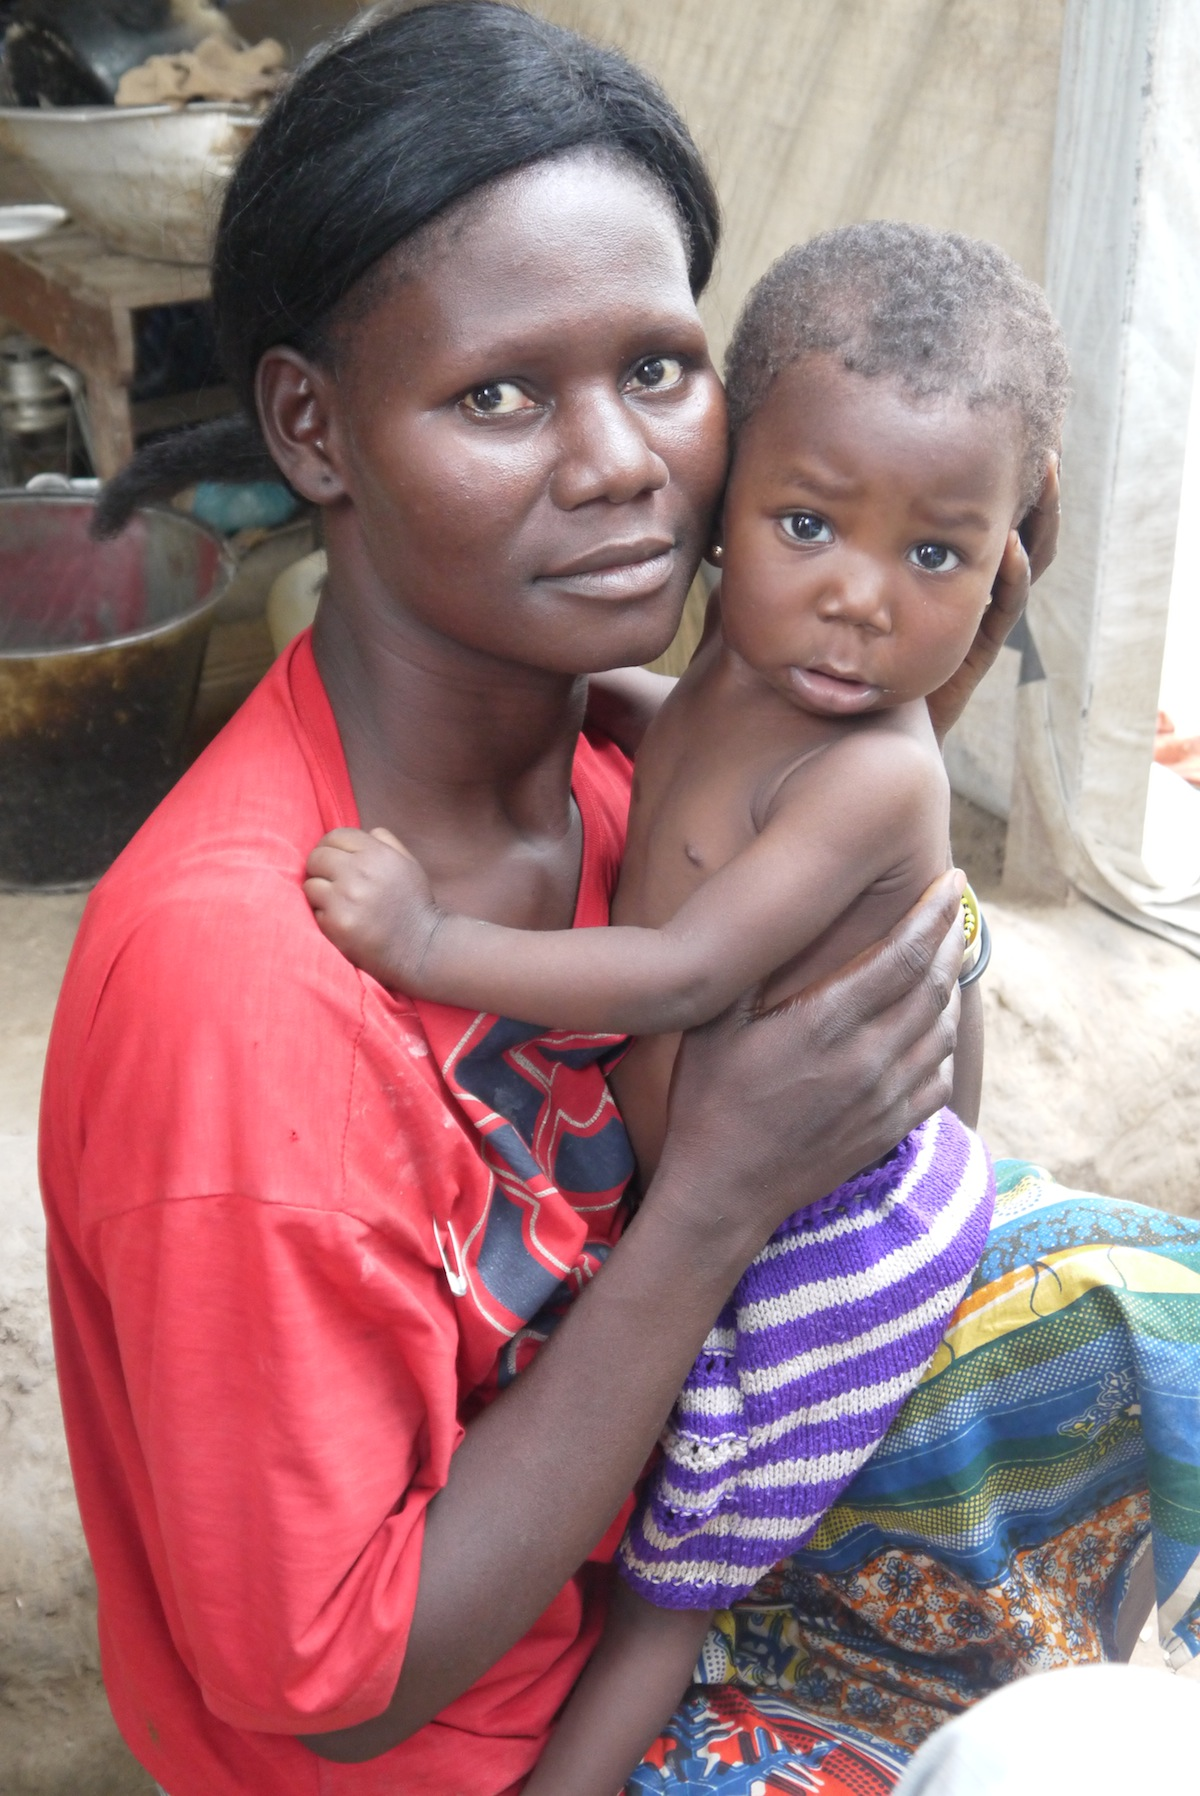 A mother and child just after getting the child's birth registered in the Central African Republic.